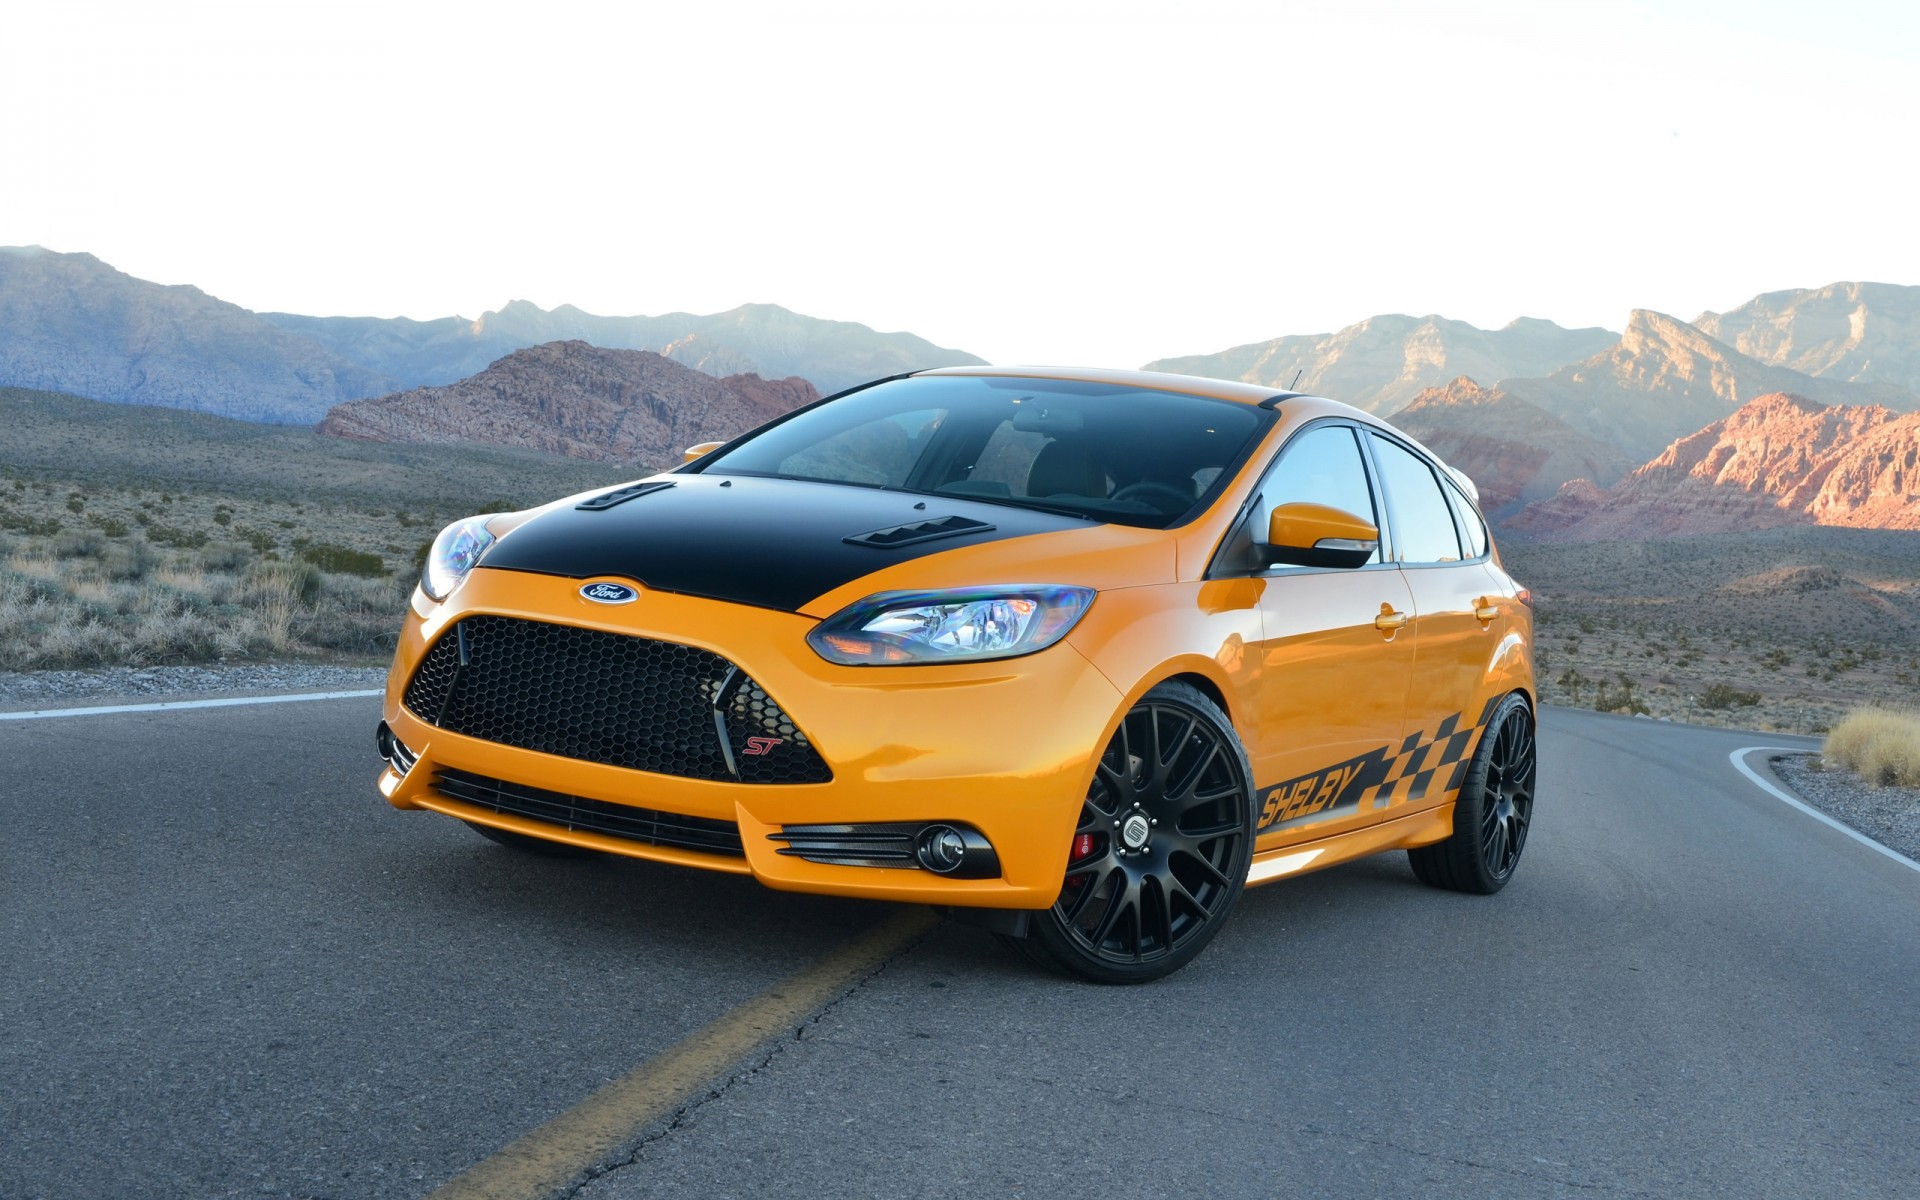 2014 Shelby Ford Focus ST Wallpaper | HD Car Wallpapers ...